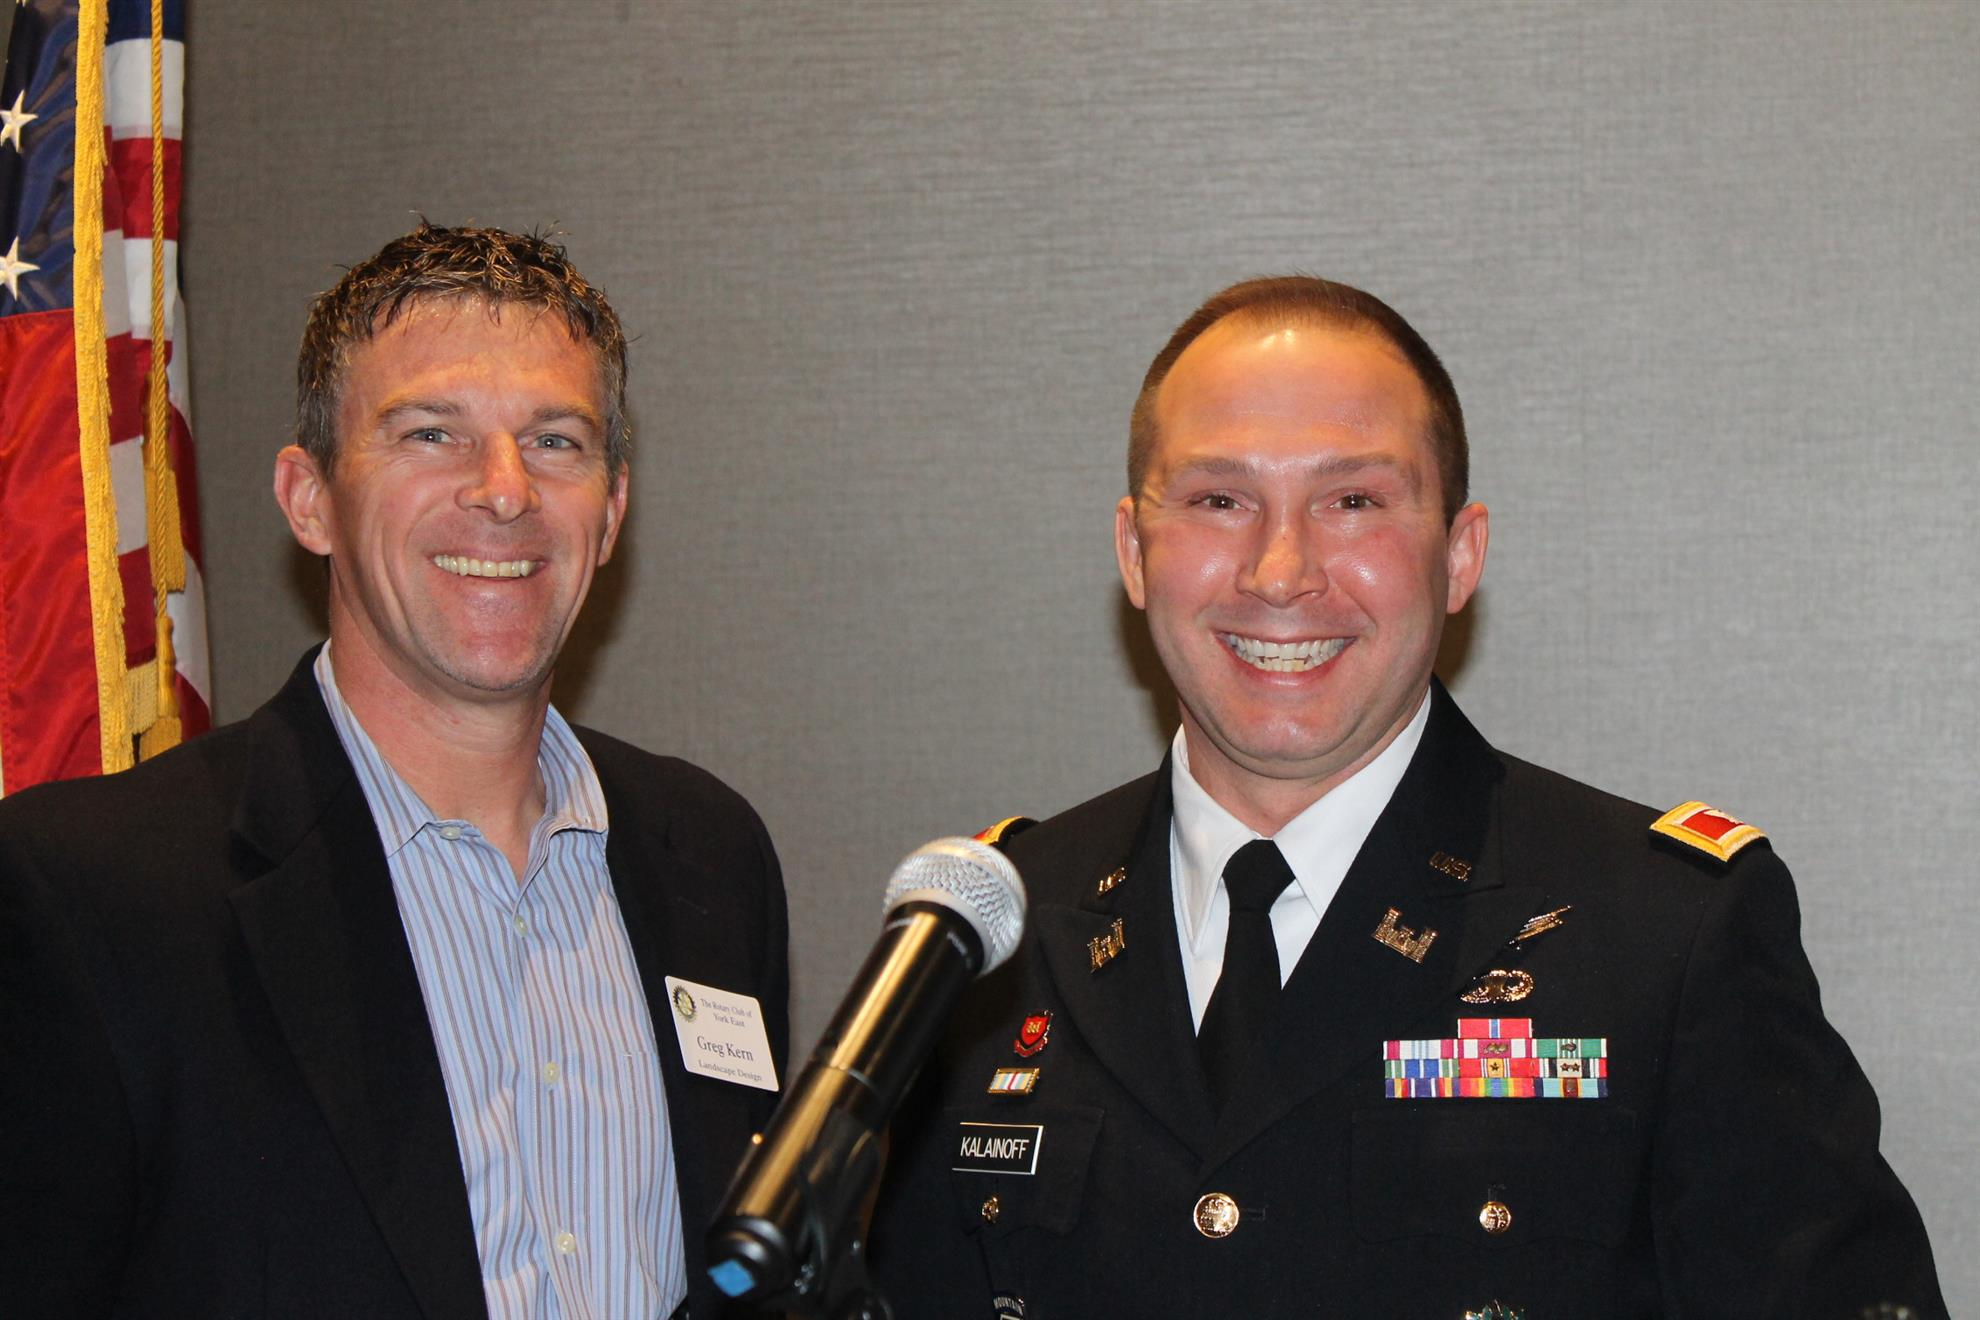 stories rotary club of york east jason kalainoff us army space operations officer and student at the us army war college in carlisle barracks spoke to york east rotarians at their weekly